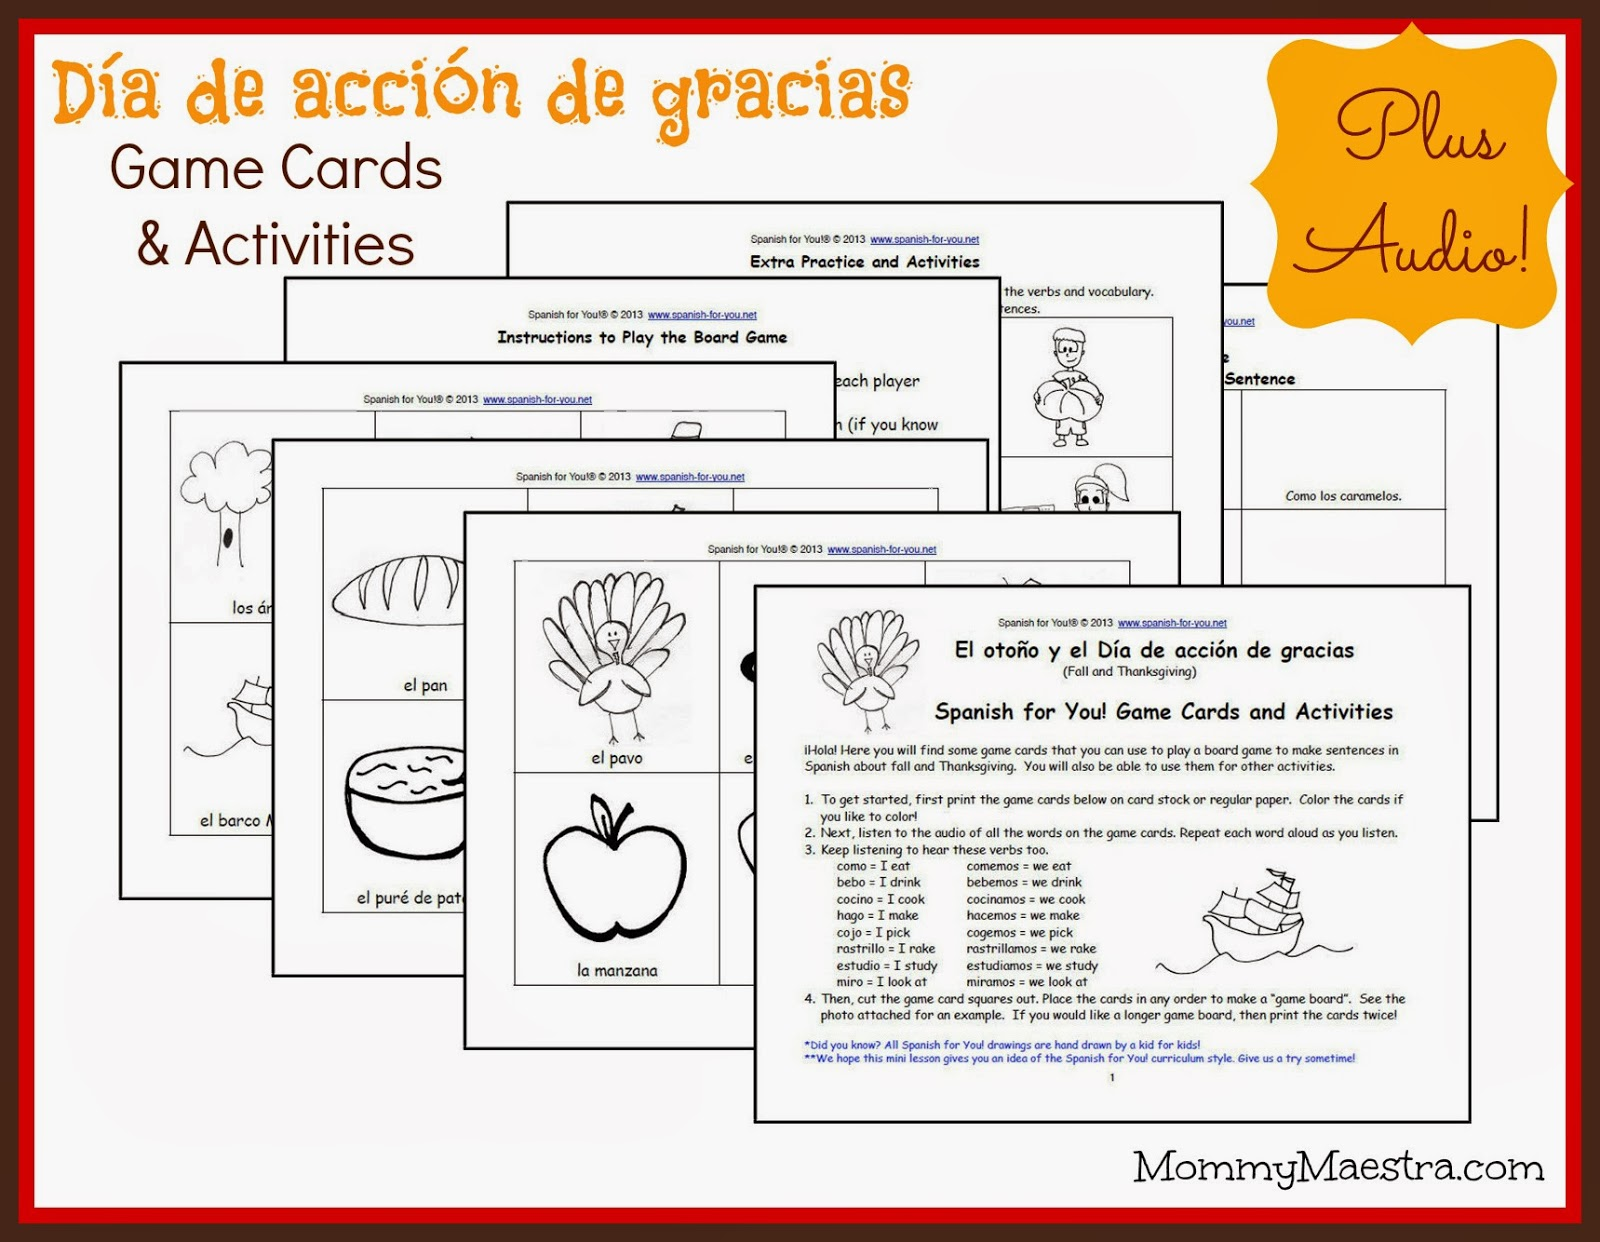 Mommy Maestra Dia De Accion De Gracias Printable Game